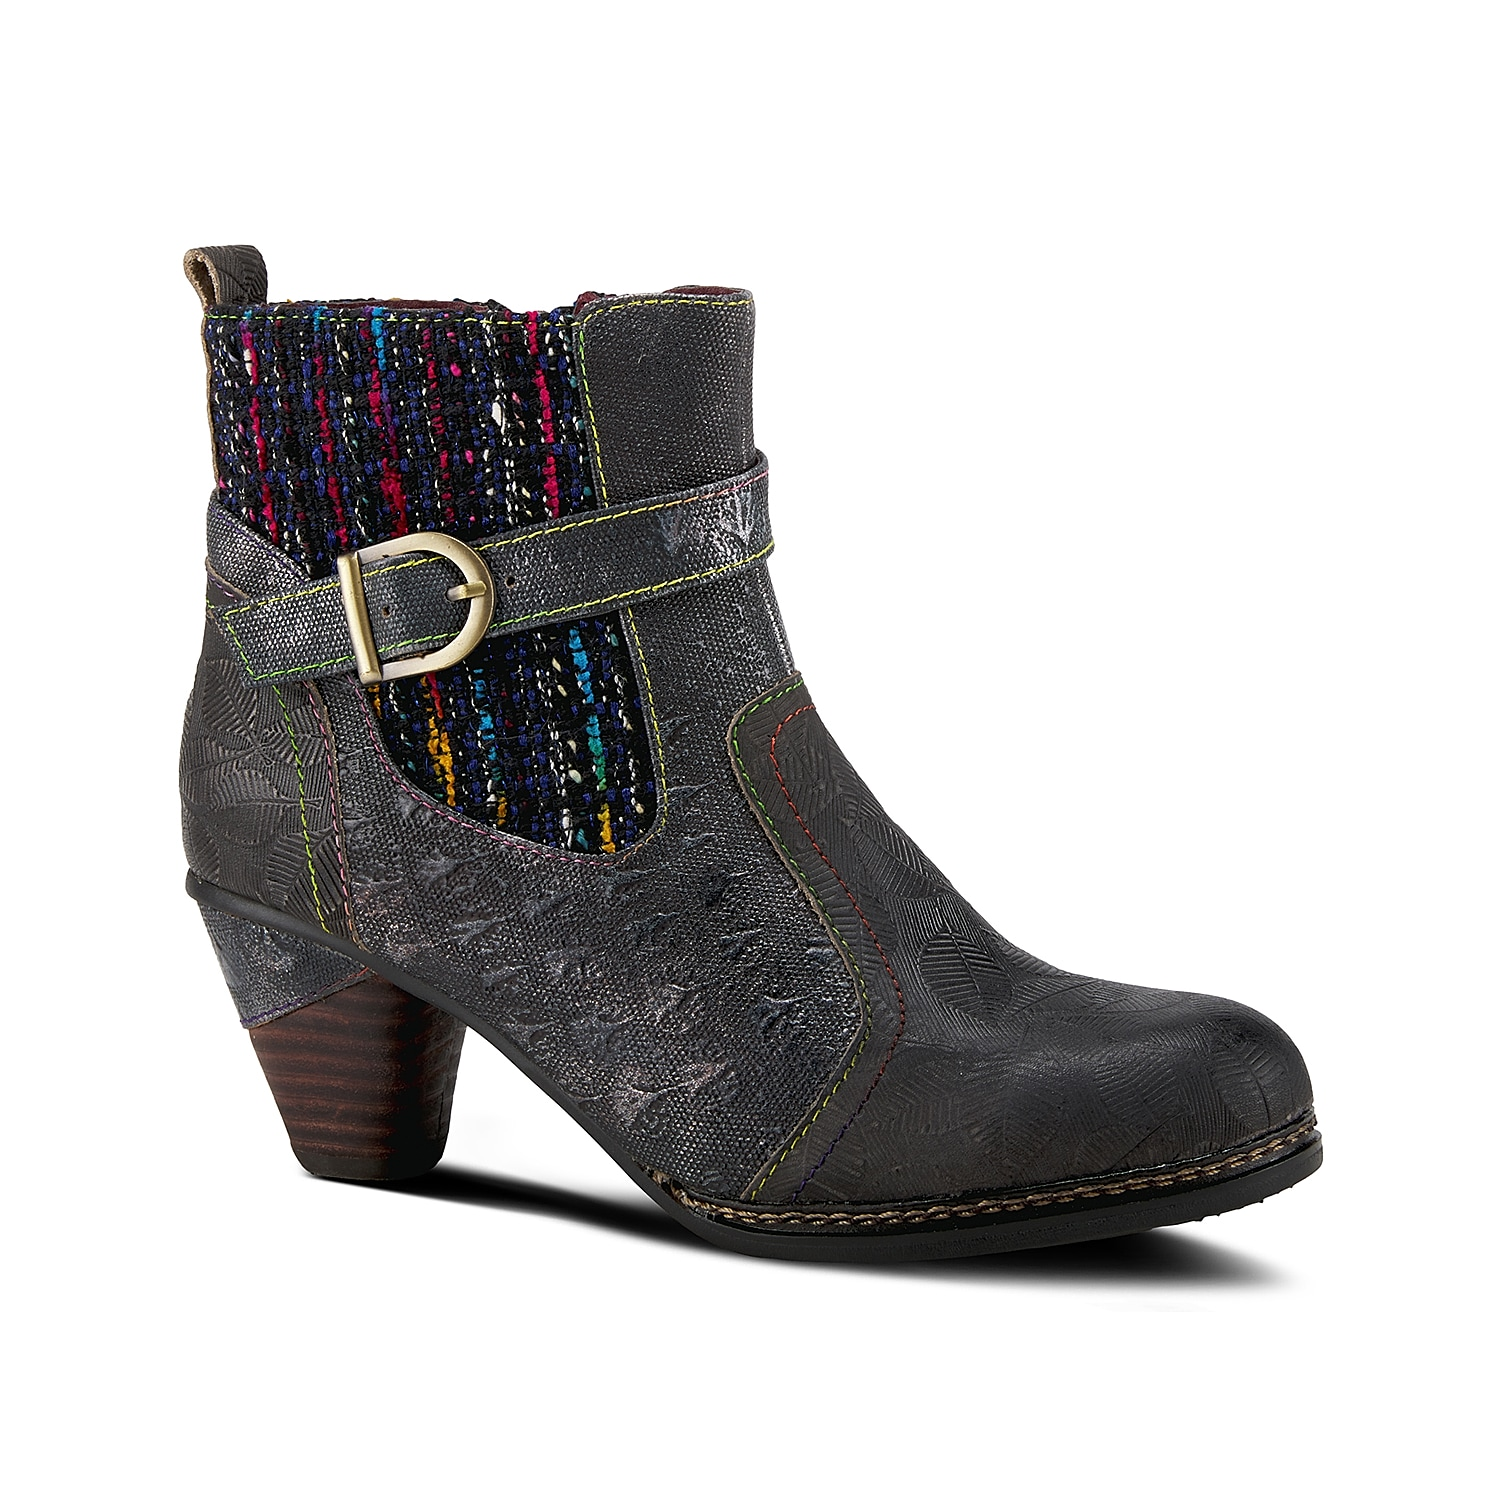 With the right amount of whimsical twist, the L\\\'Artiste Cienna bootie is sure to create a lasting impression. Metallic and colorful textile shaft gives a lively touch to the laidback tooled and burnished upper while a padded insole lends you all the comfort you need.Click here for Boot Measuring Guide.